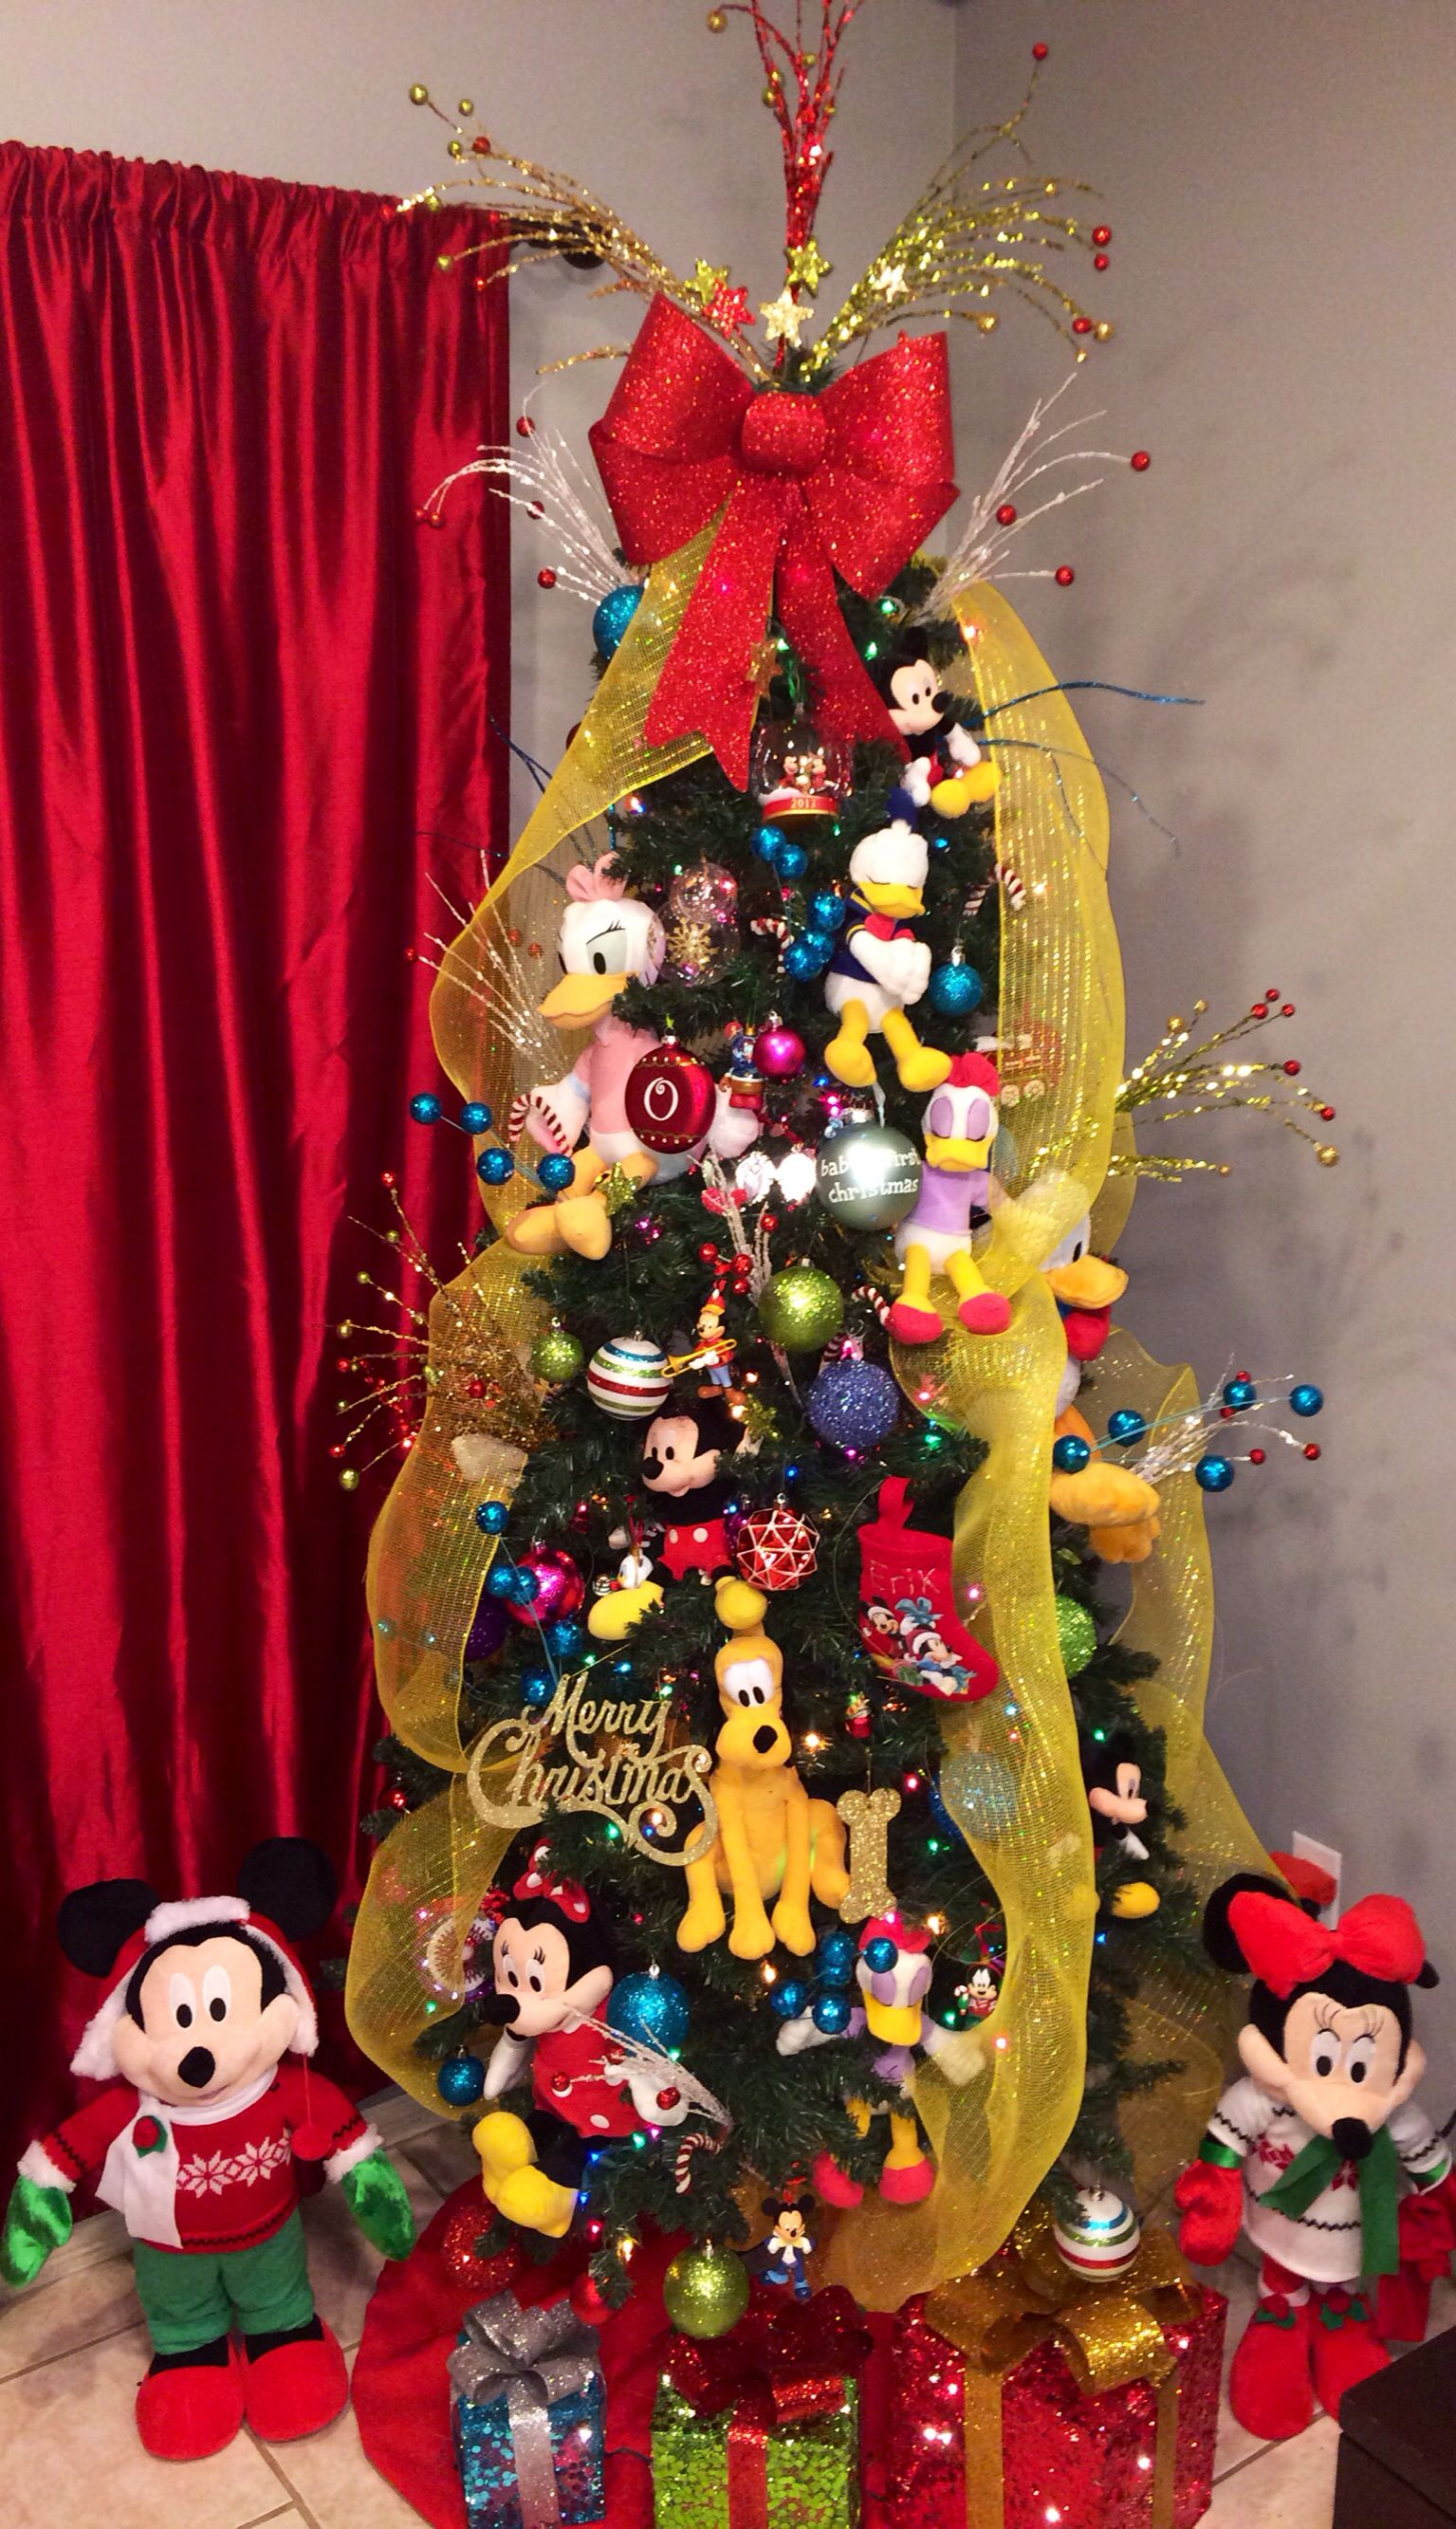 christmas tree decorations Ideas | Mickey mouse clubhouse, Mickey ...